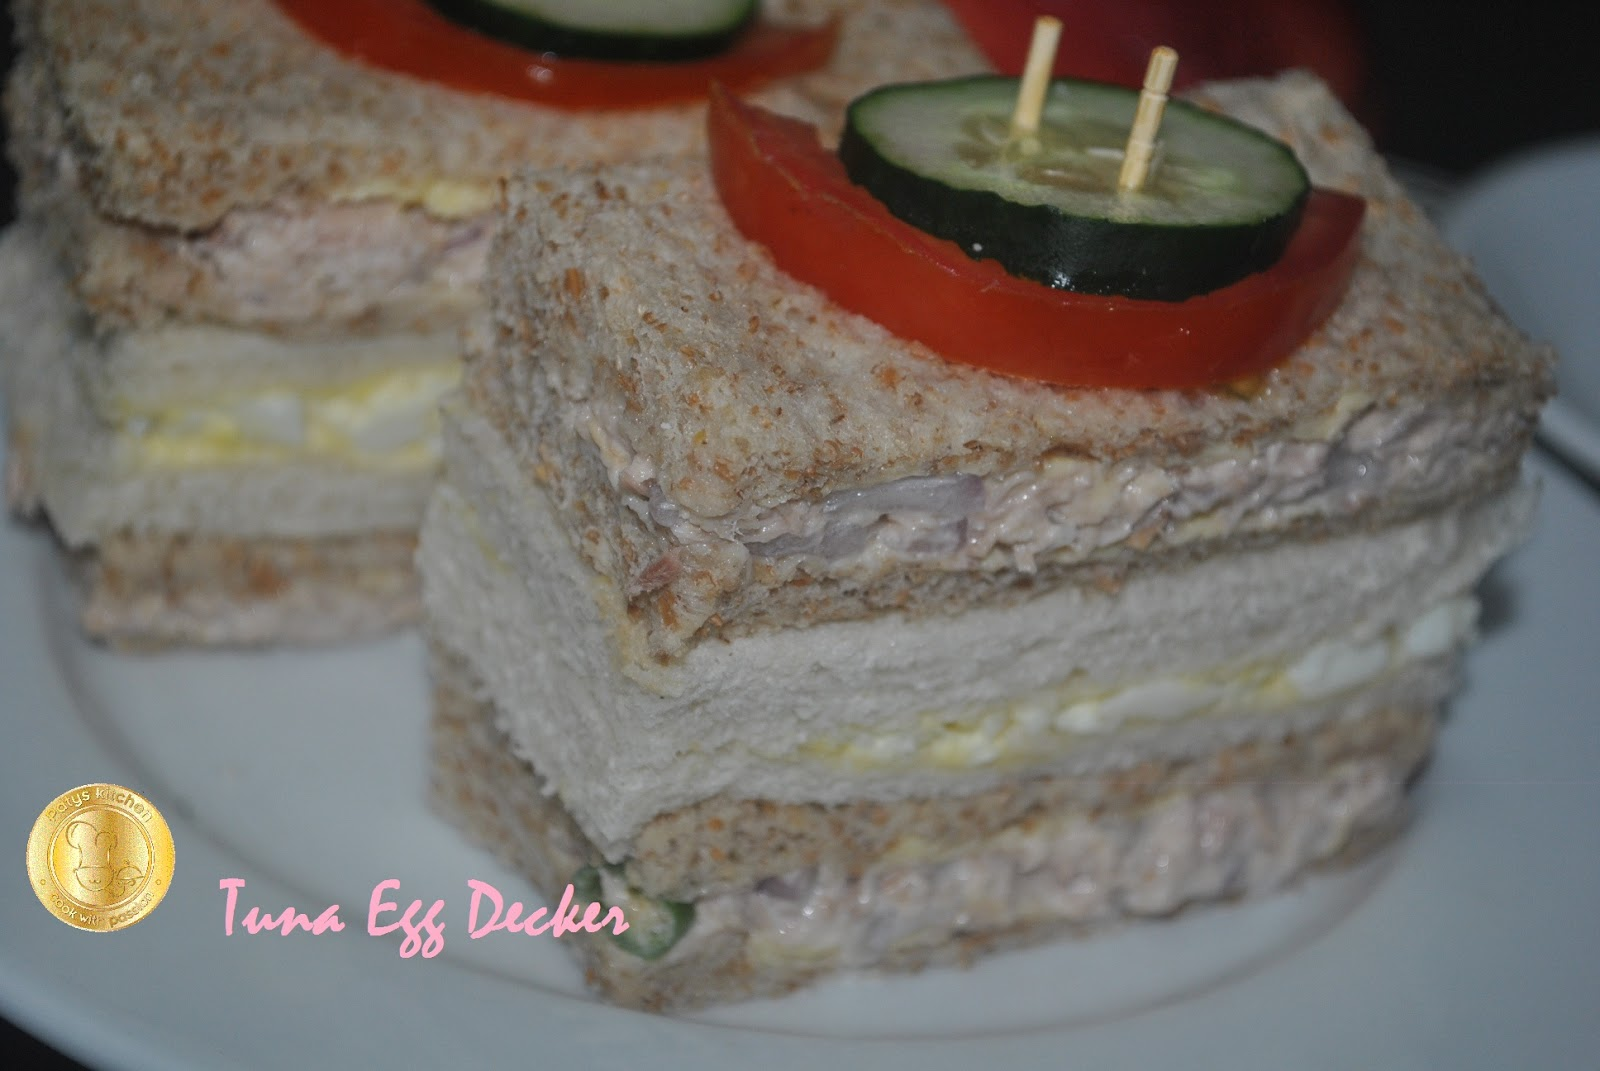 Patyskitchen tuna eggs decker sandwich for Tuna and egg sandwich